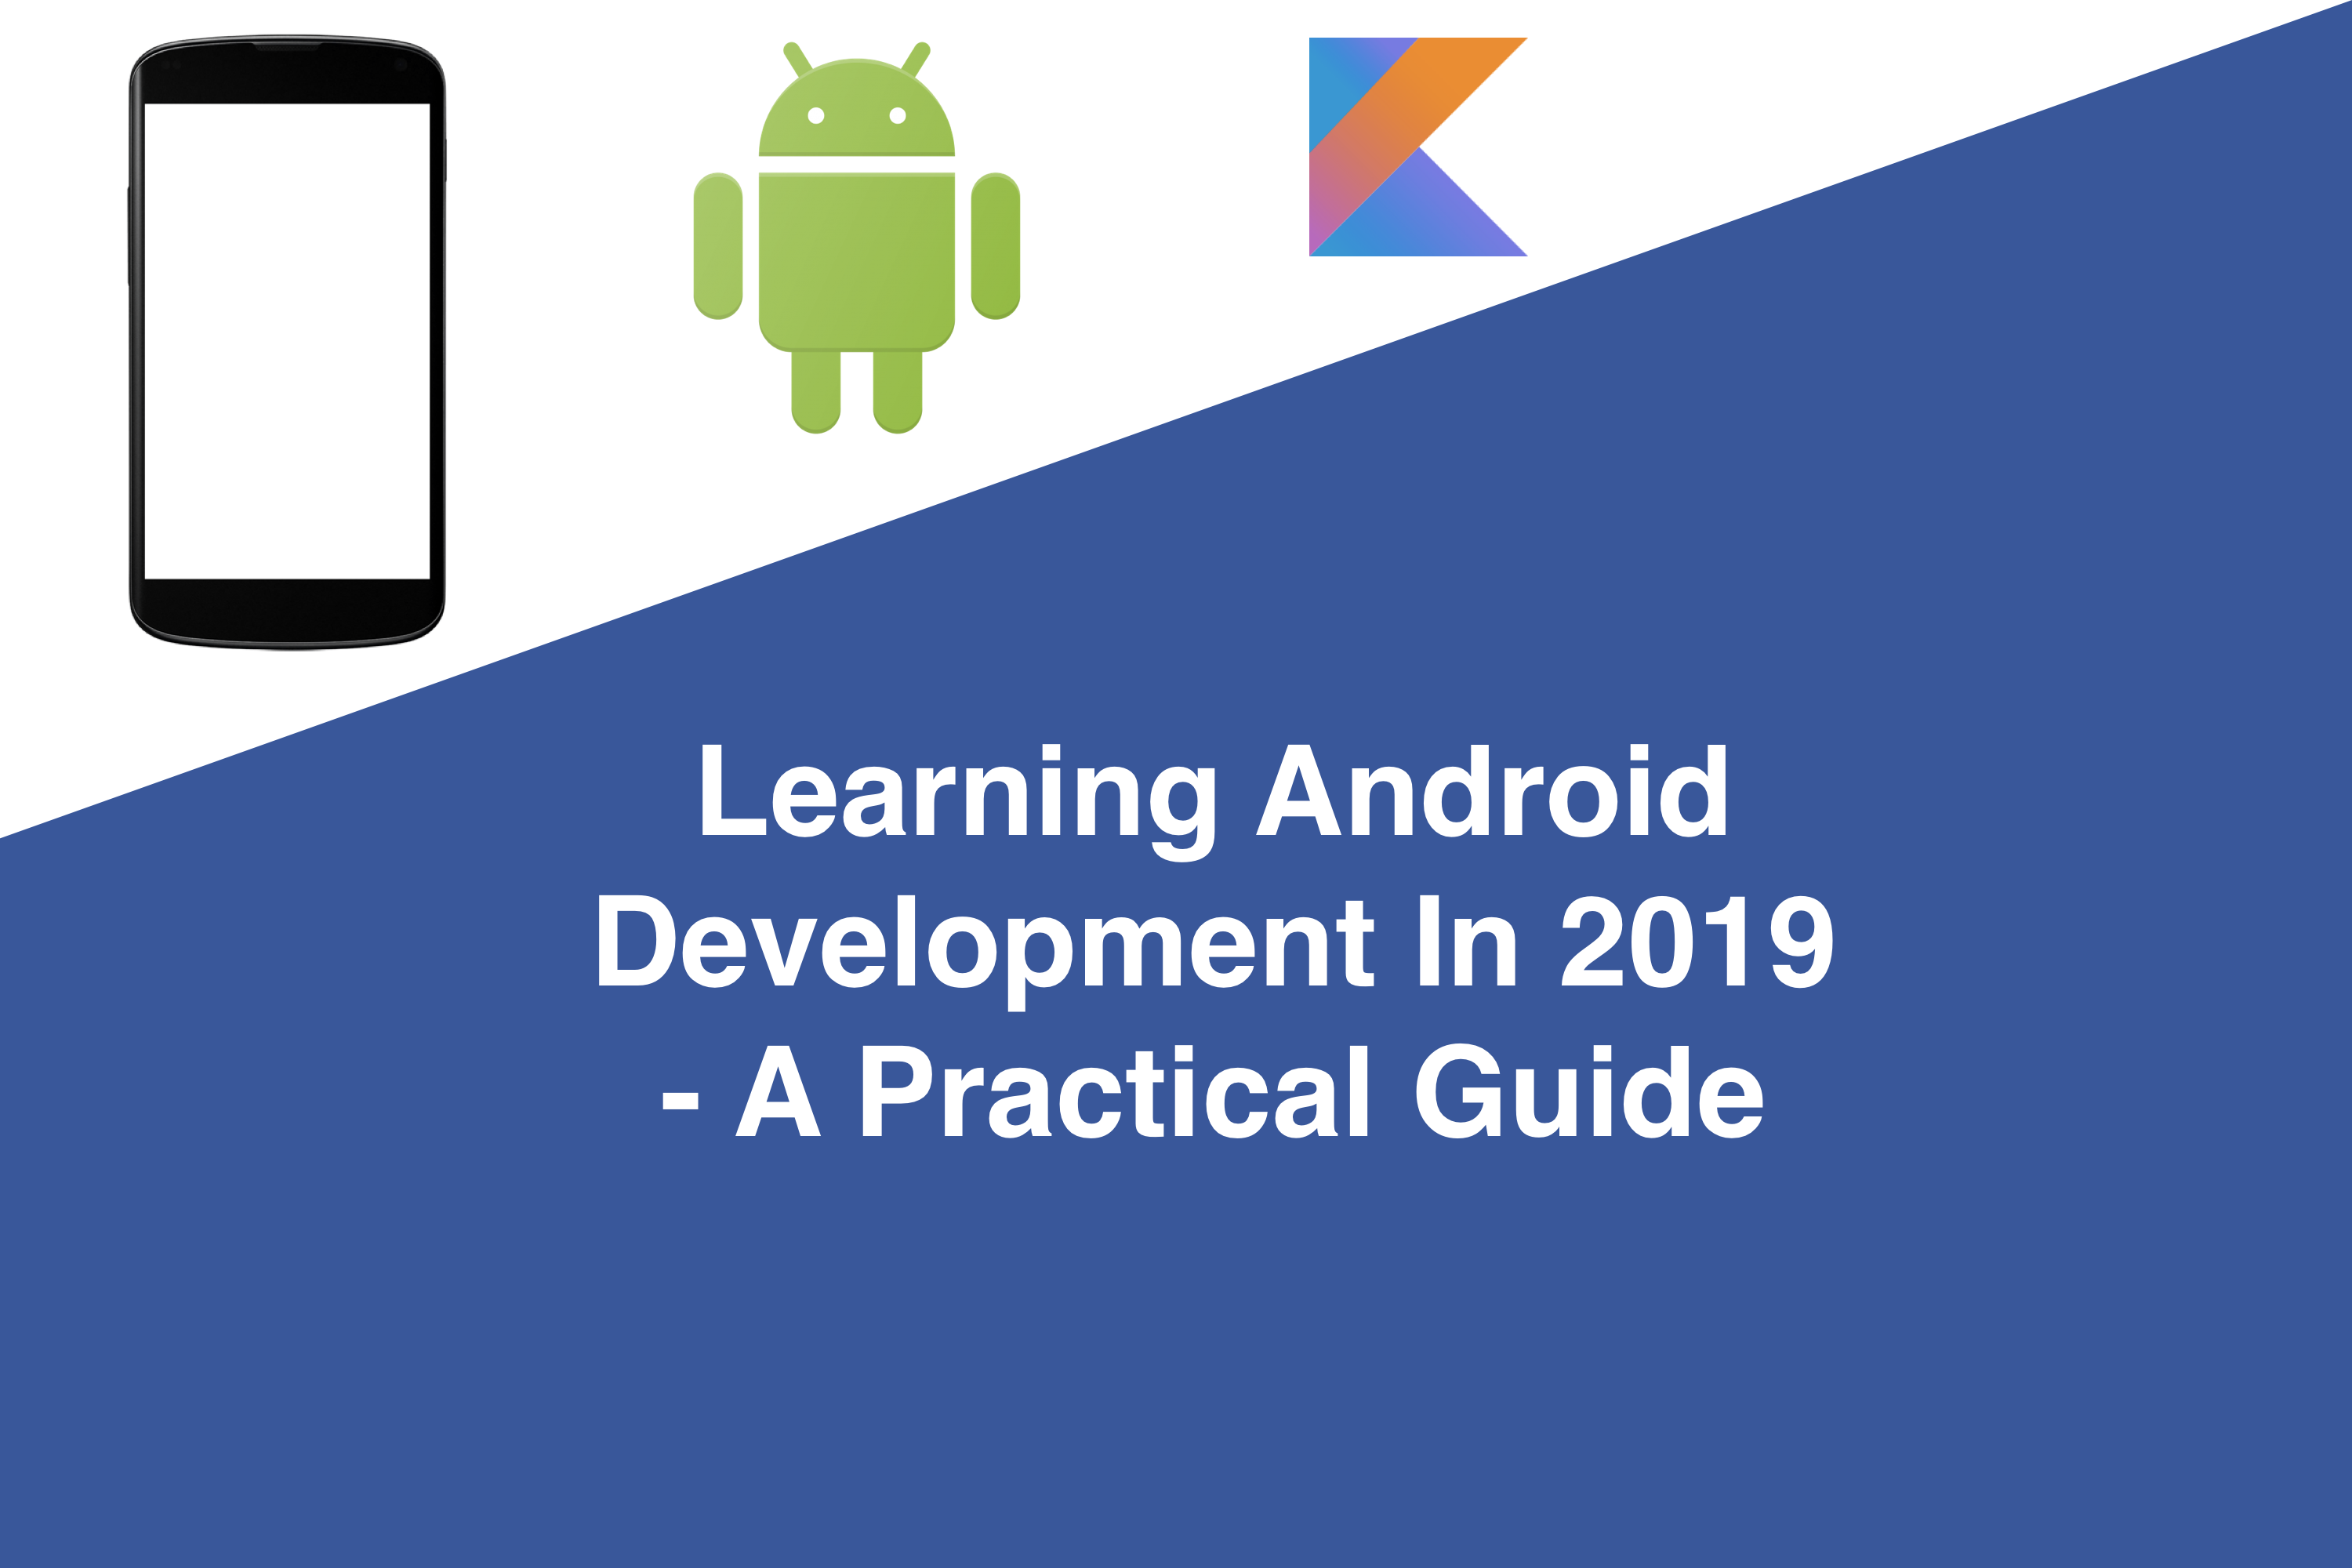 Learning Android Development In 2019 - A Practical Guide